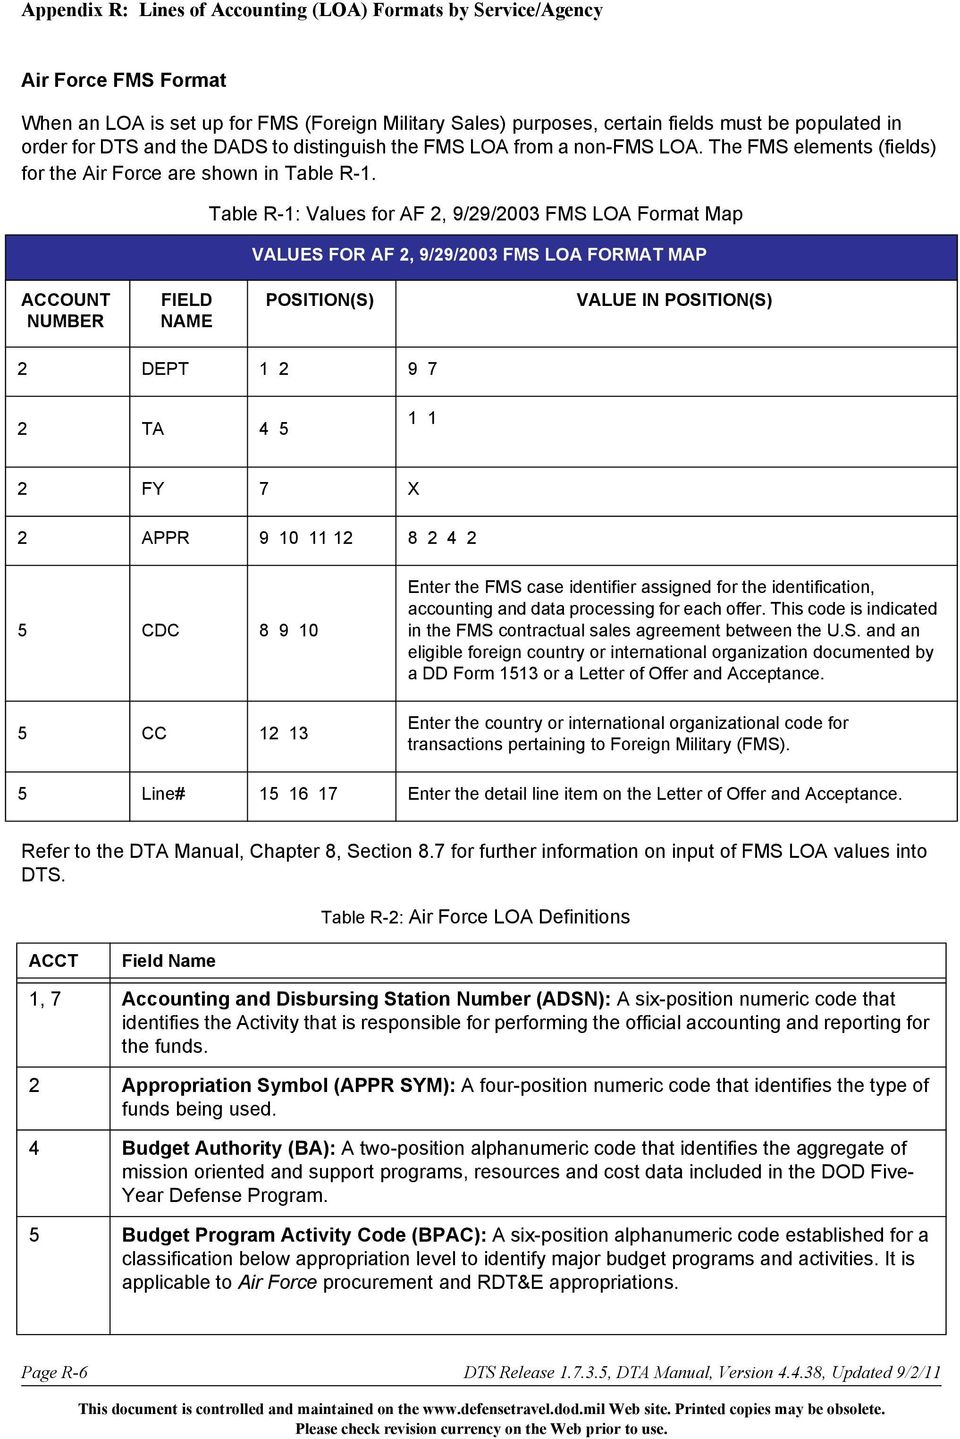 Navy line of accounting study